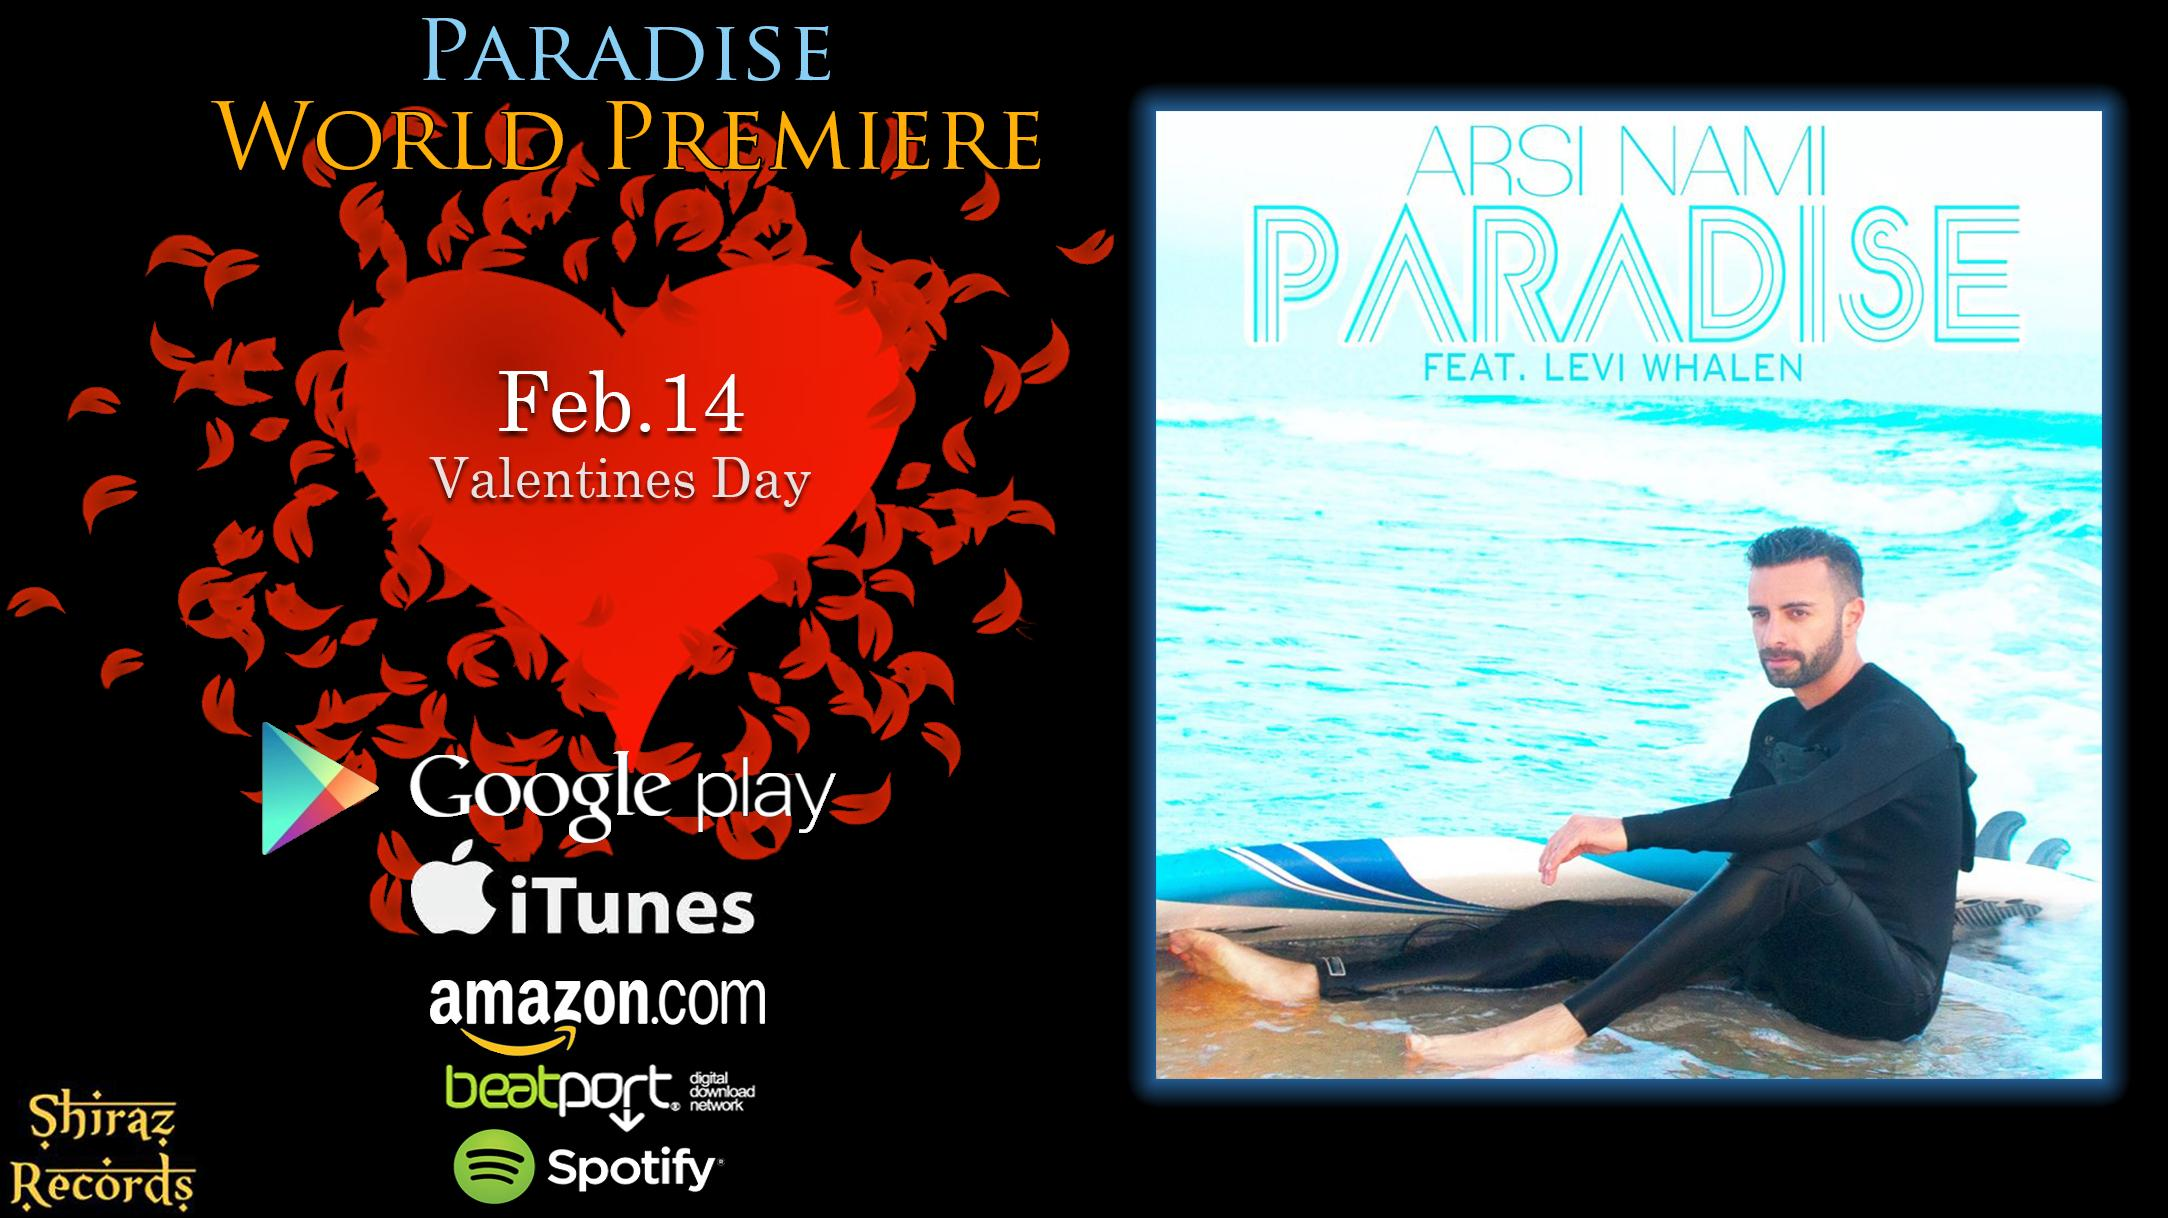 Flickr - Arsi Nami - Paradise (feat.Levi Whalen) World Premiere on Valentines Da